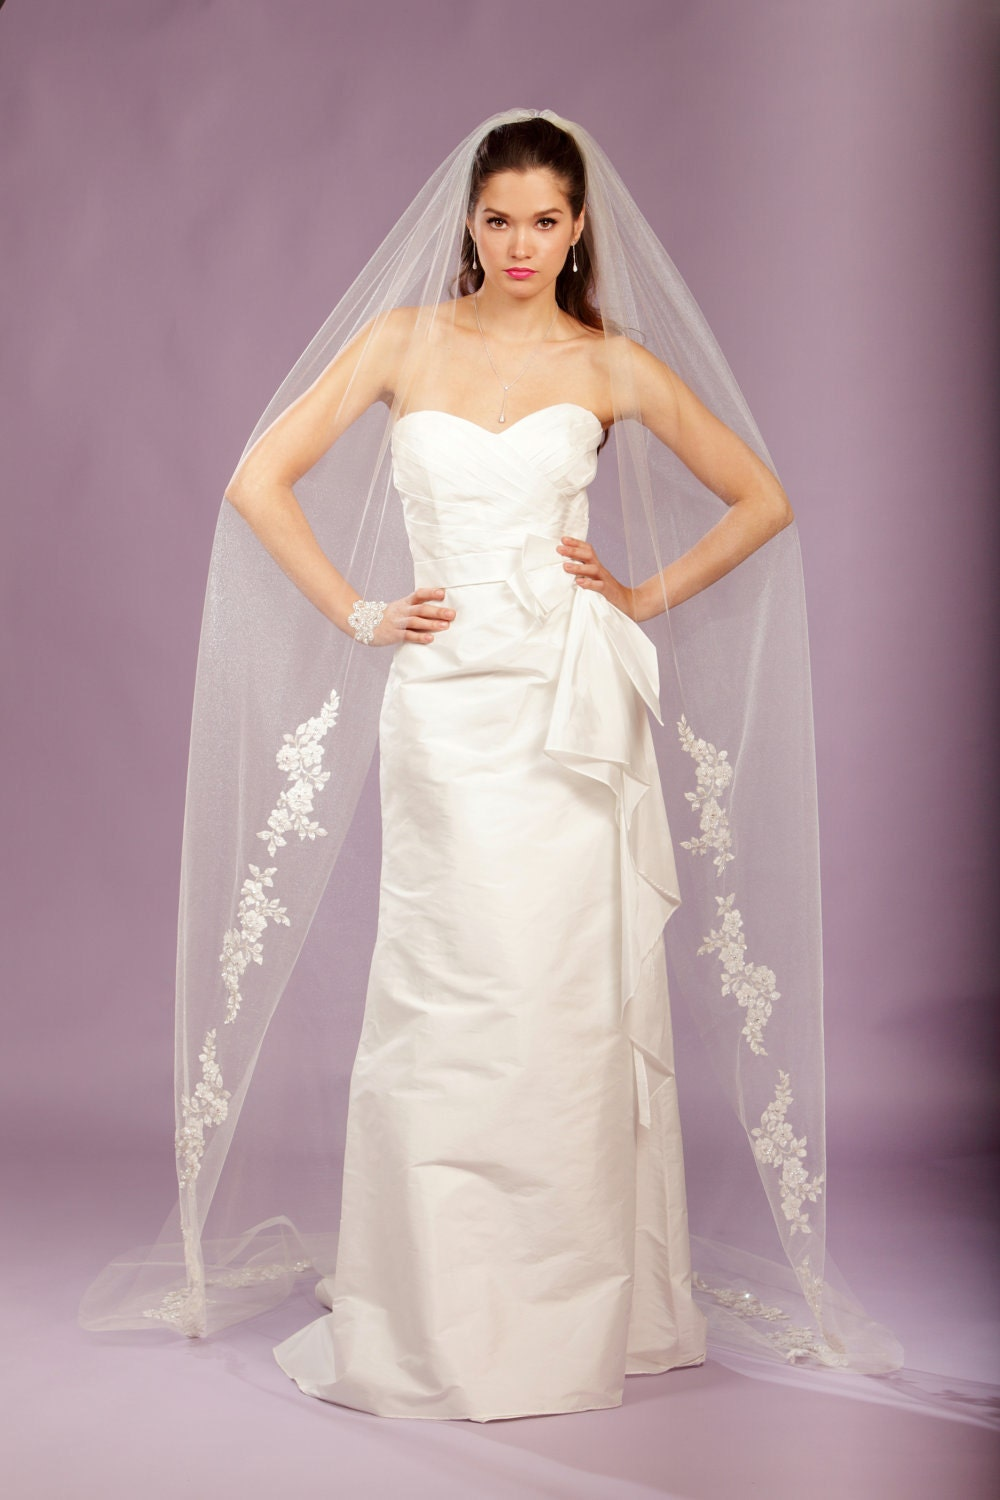 Wedding Veil -Cathedral Veil, FRENCH Appliques Adorned with Swarovski Crystals, Embroidery, and Sequins - made to order